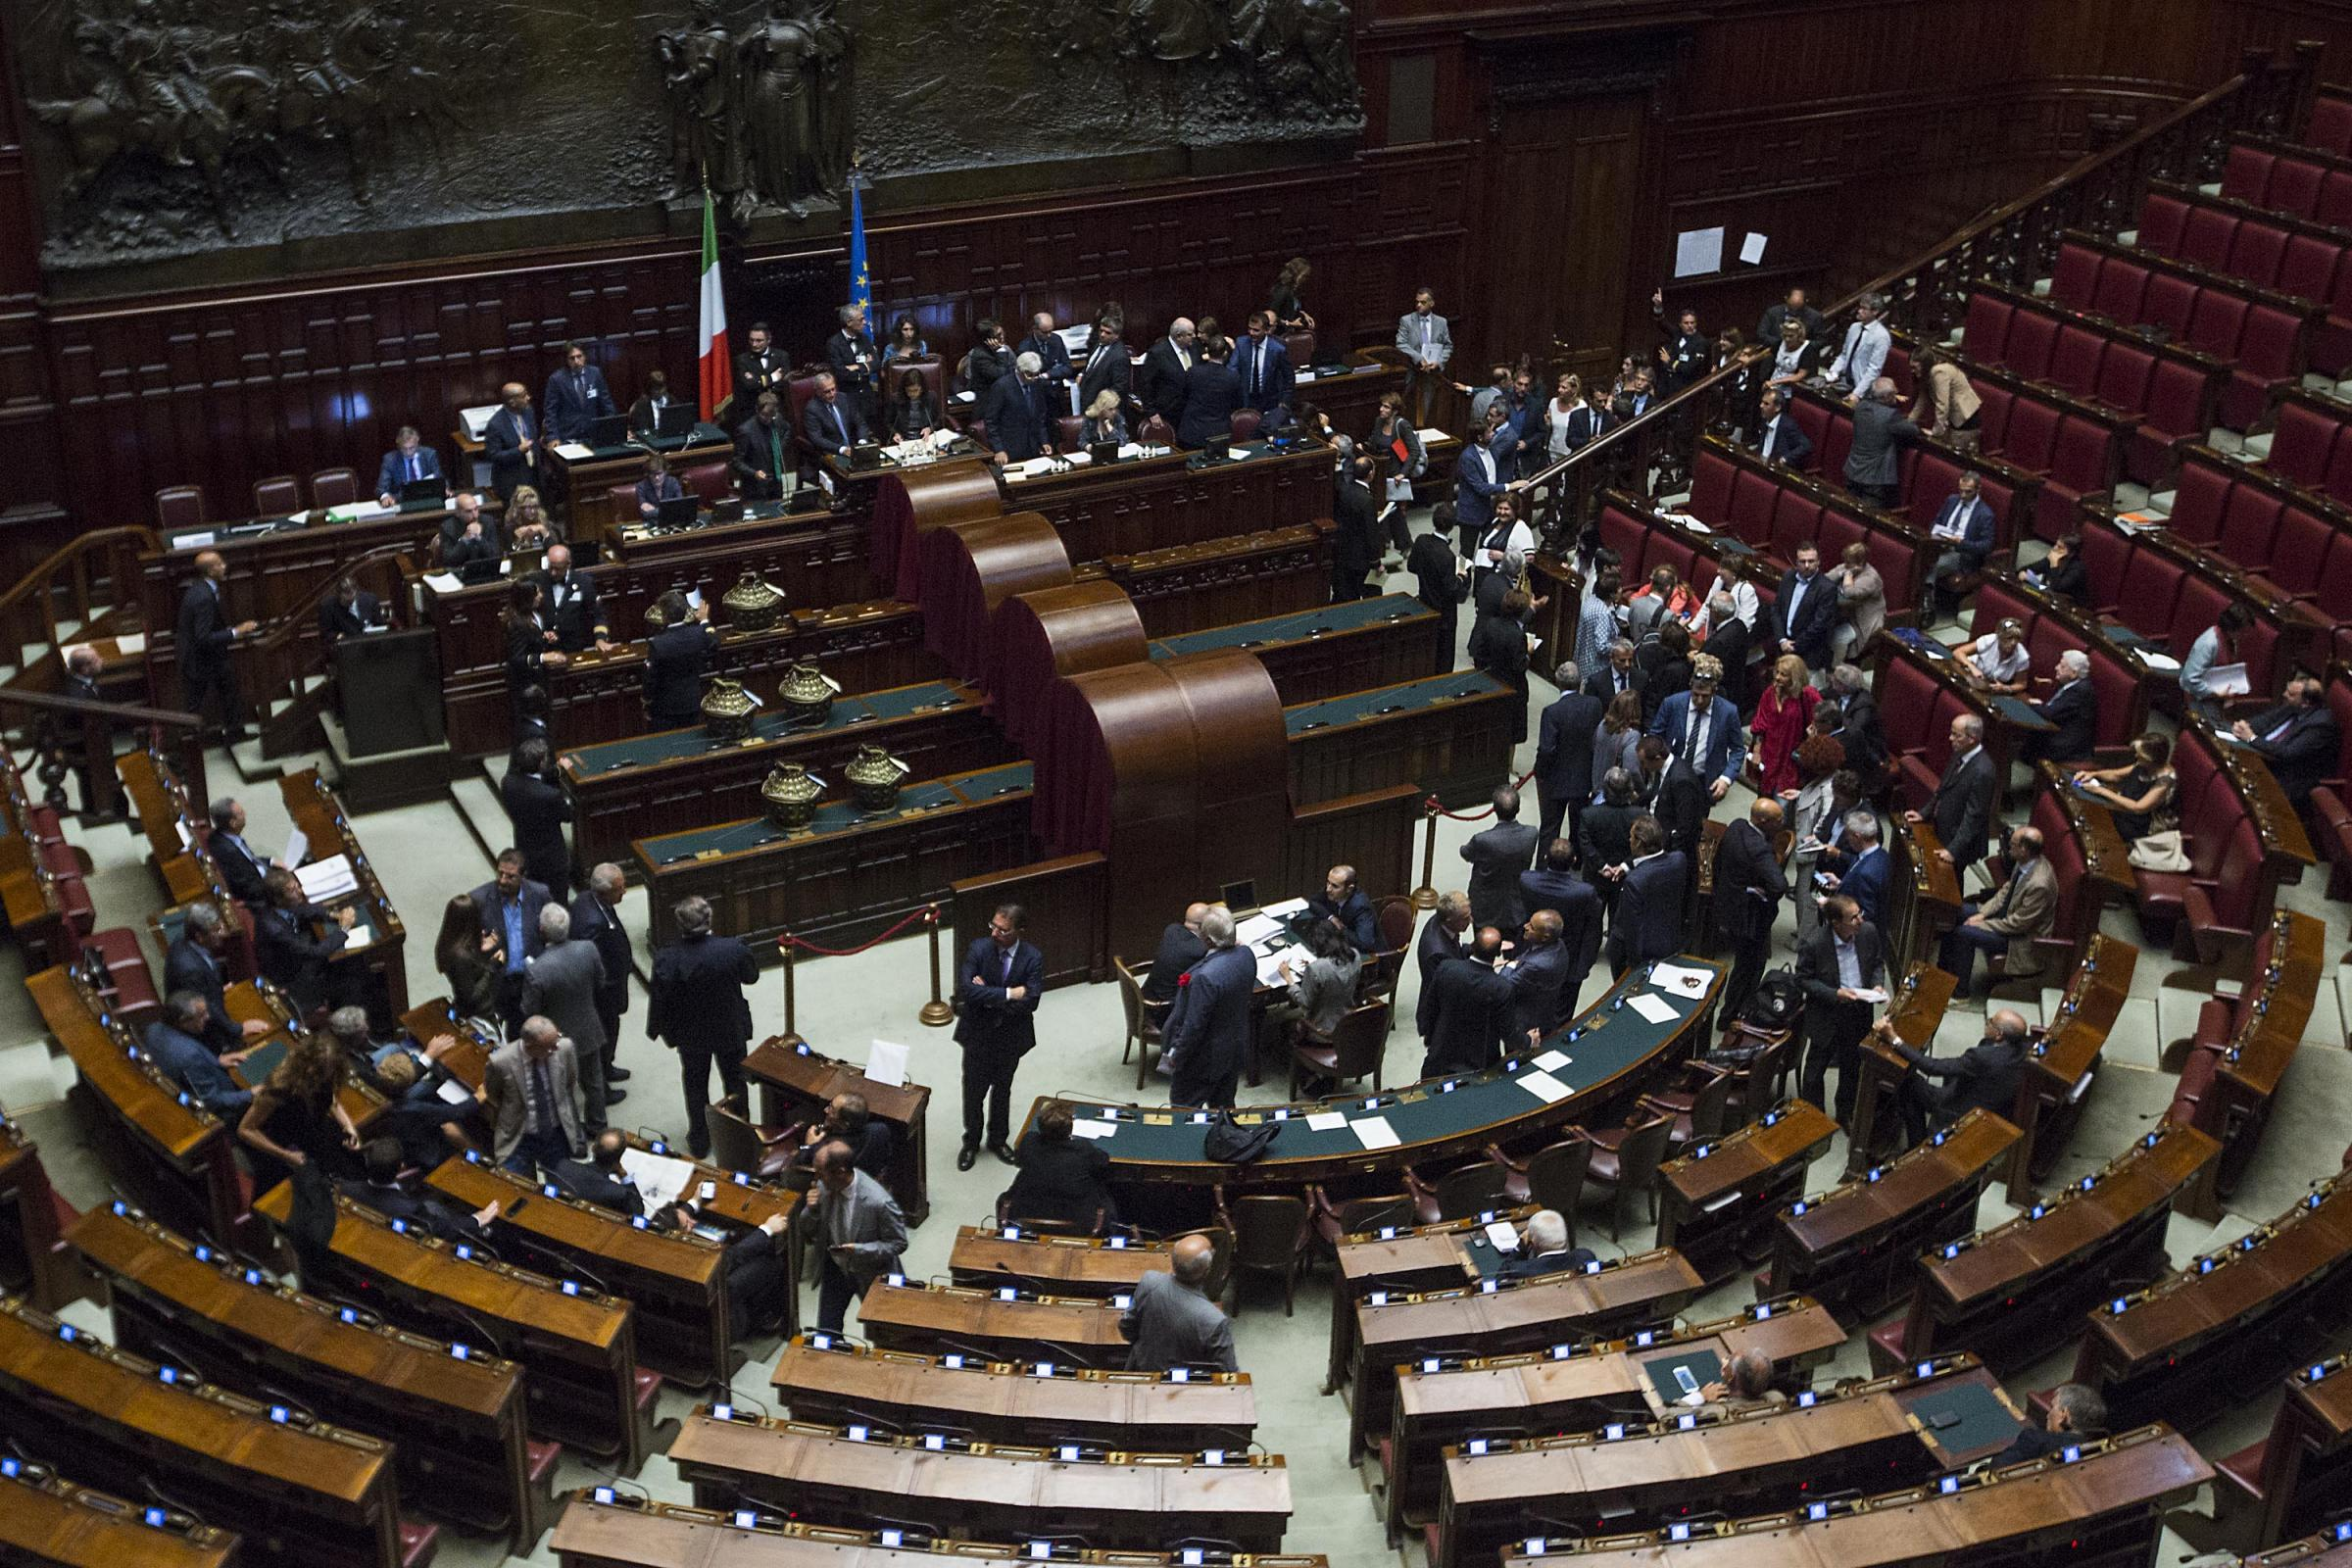 Da camera e senato via libera al taglio degli stipendi dei for Camera e senato differenze